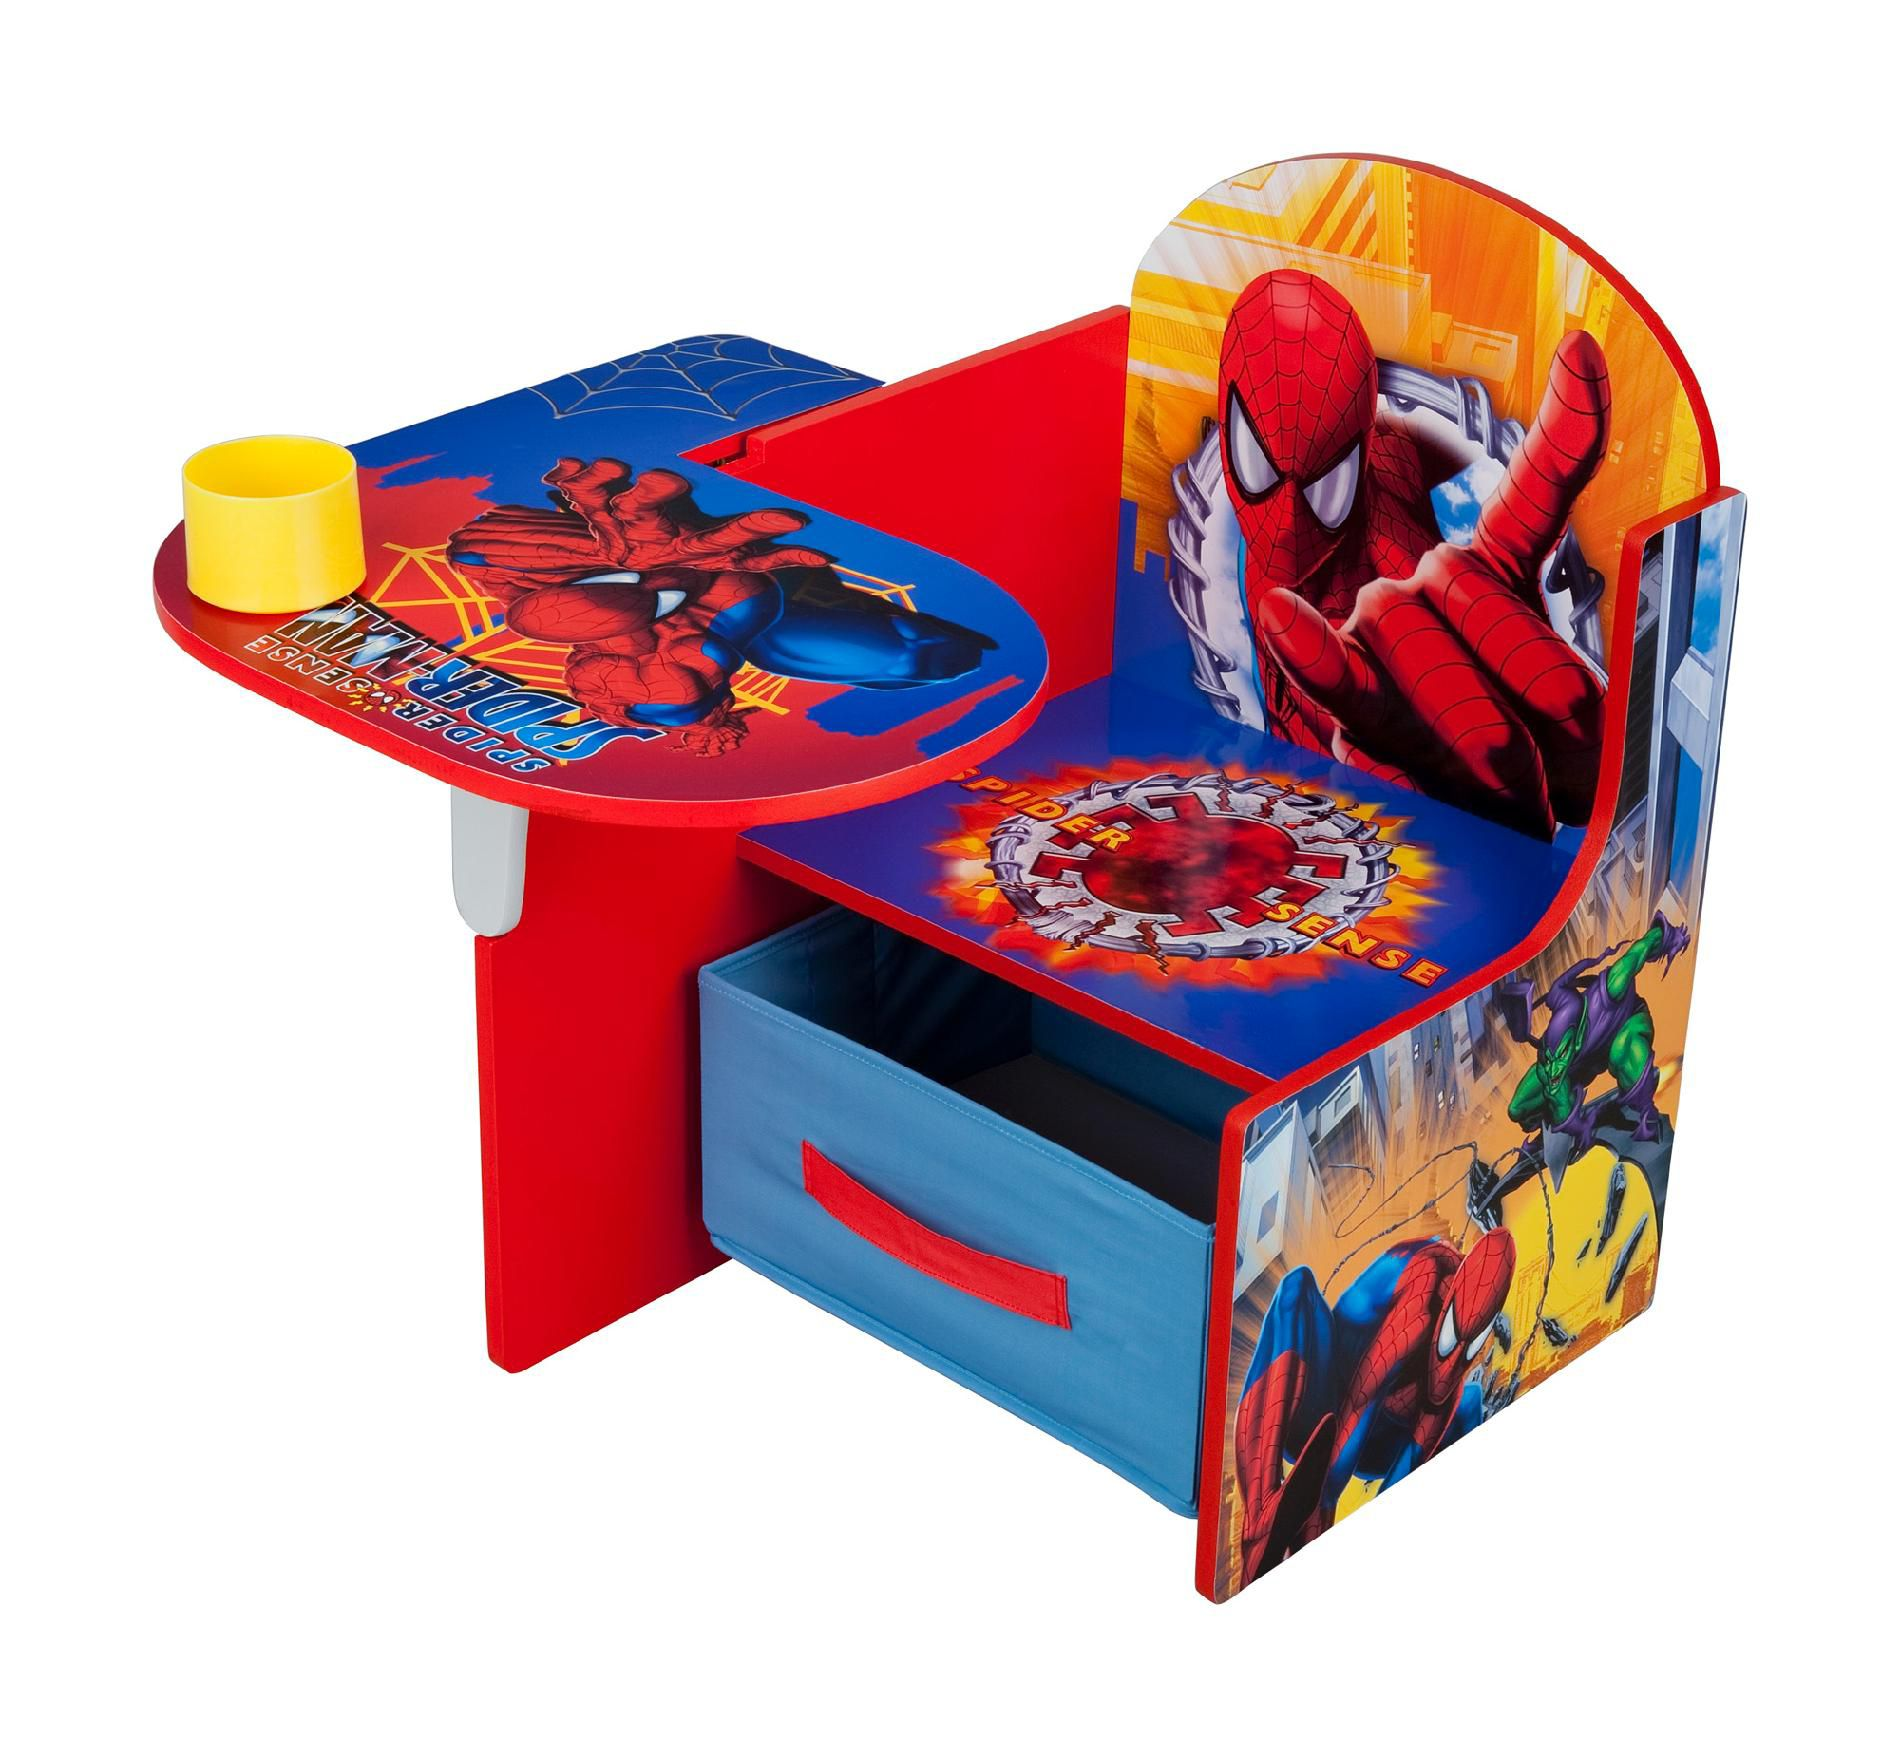 spiderman table and chairs dunelm chair cover hire chester delta children desk baby toddler